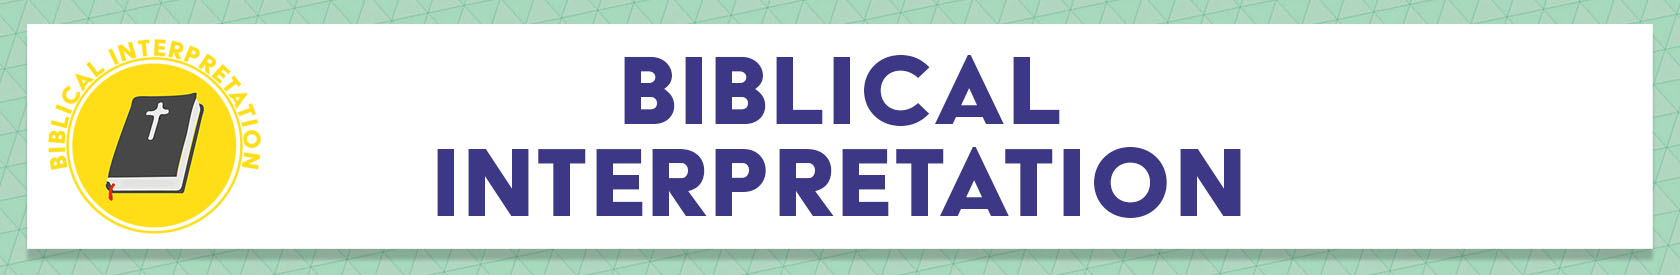 Resources: Biblical Interpretation